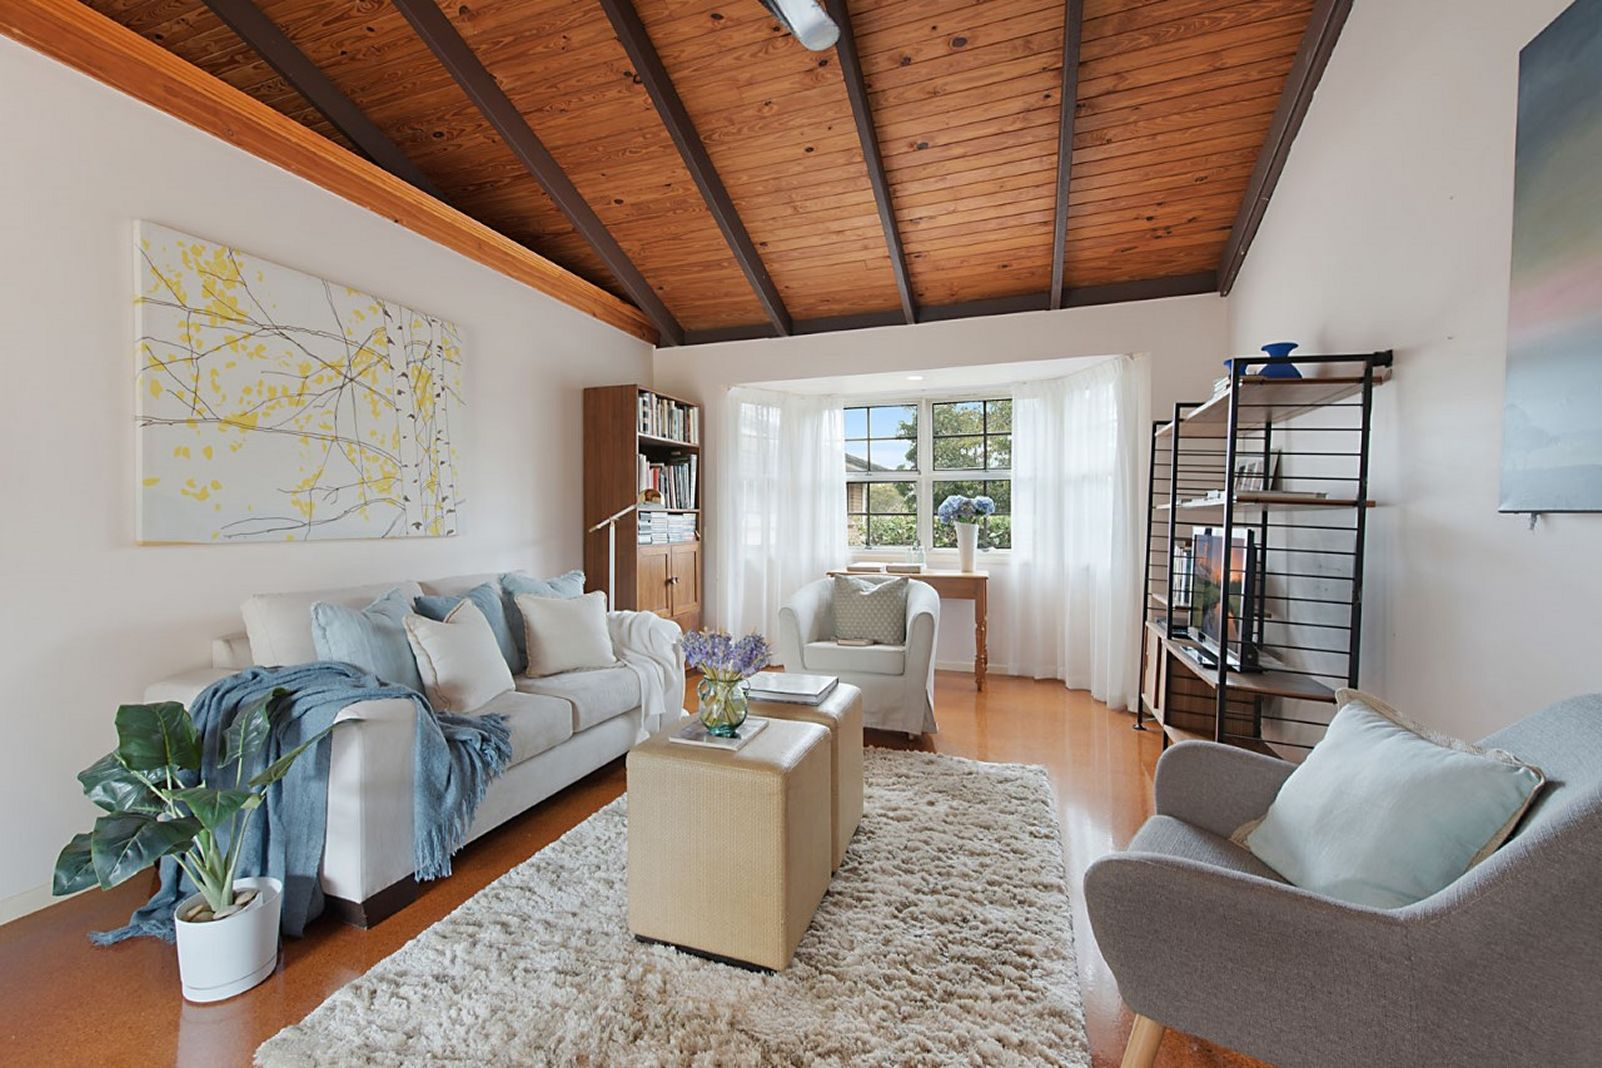 Kenmore Hills Home – Do you need Part Styling on a Shoestring?